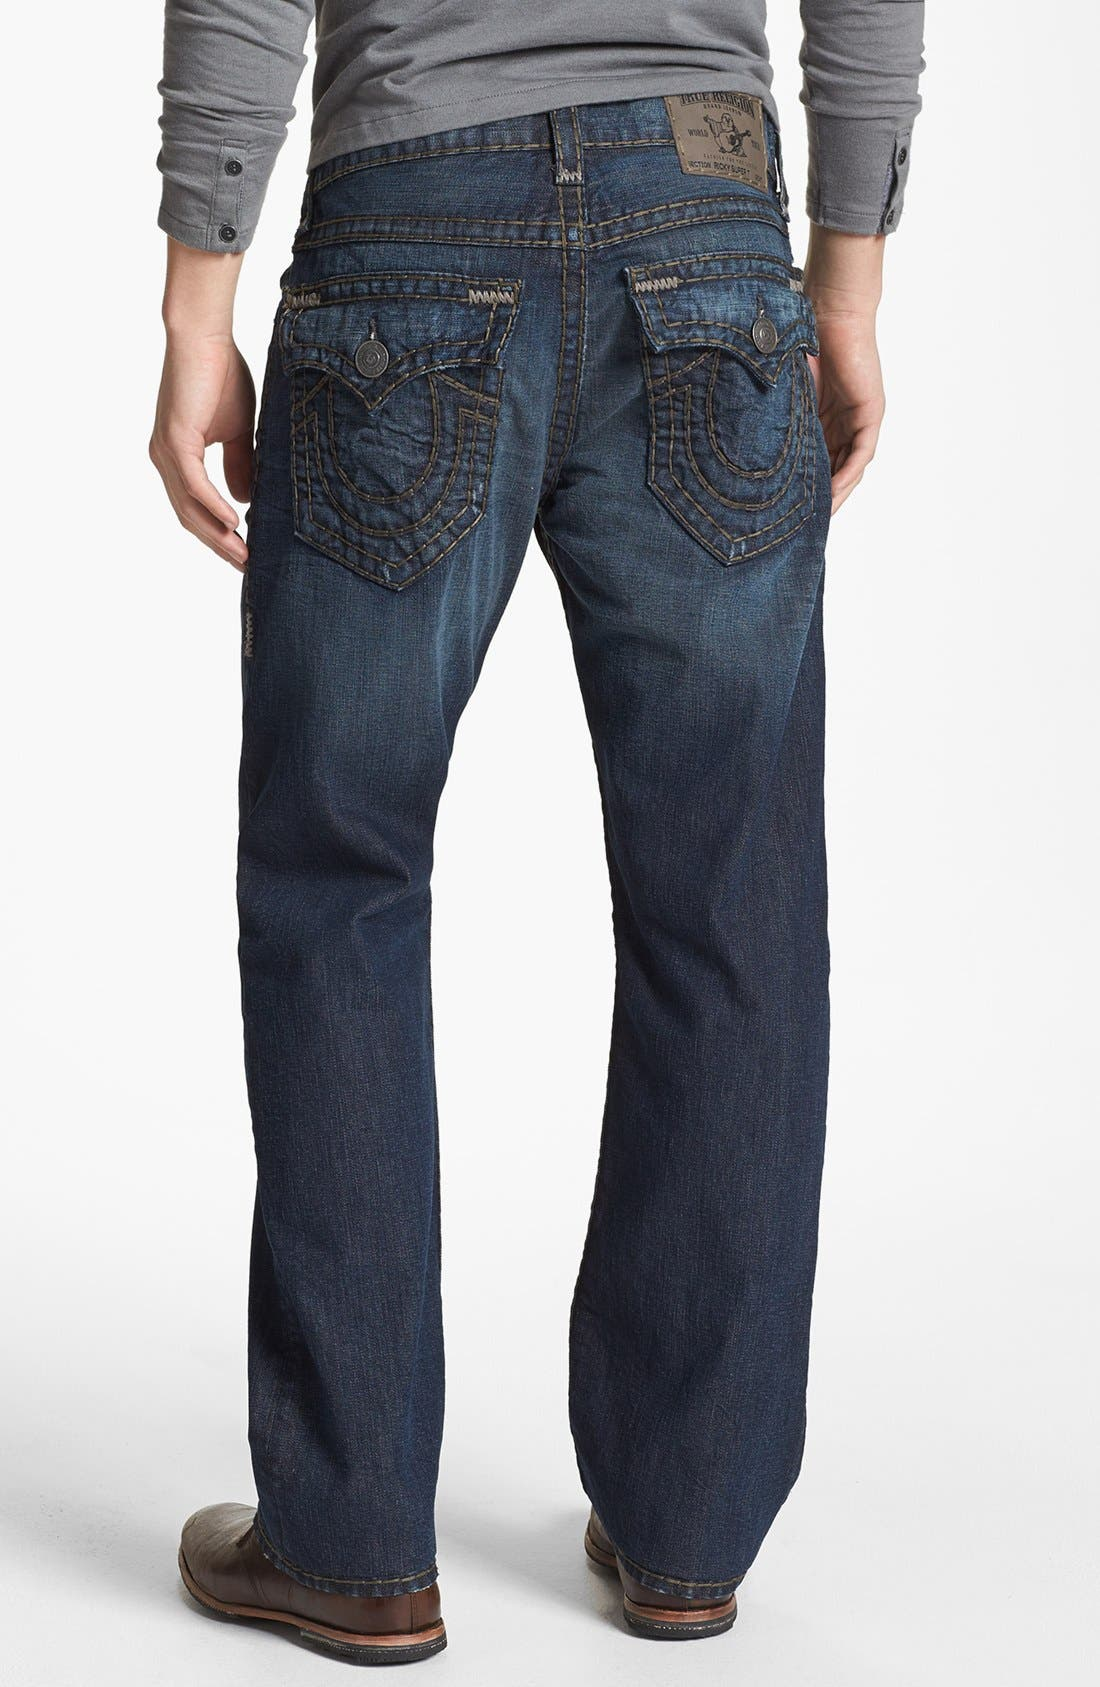 Main Image - True Religion Brand Jeans 'Ricky - Super T' Straight Leg Jeans (Asjd Breaking Grounds)